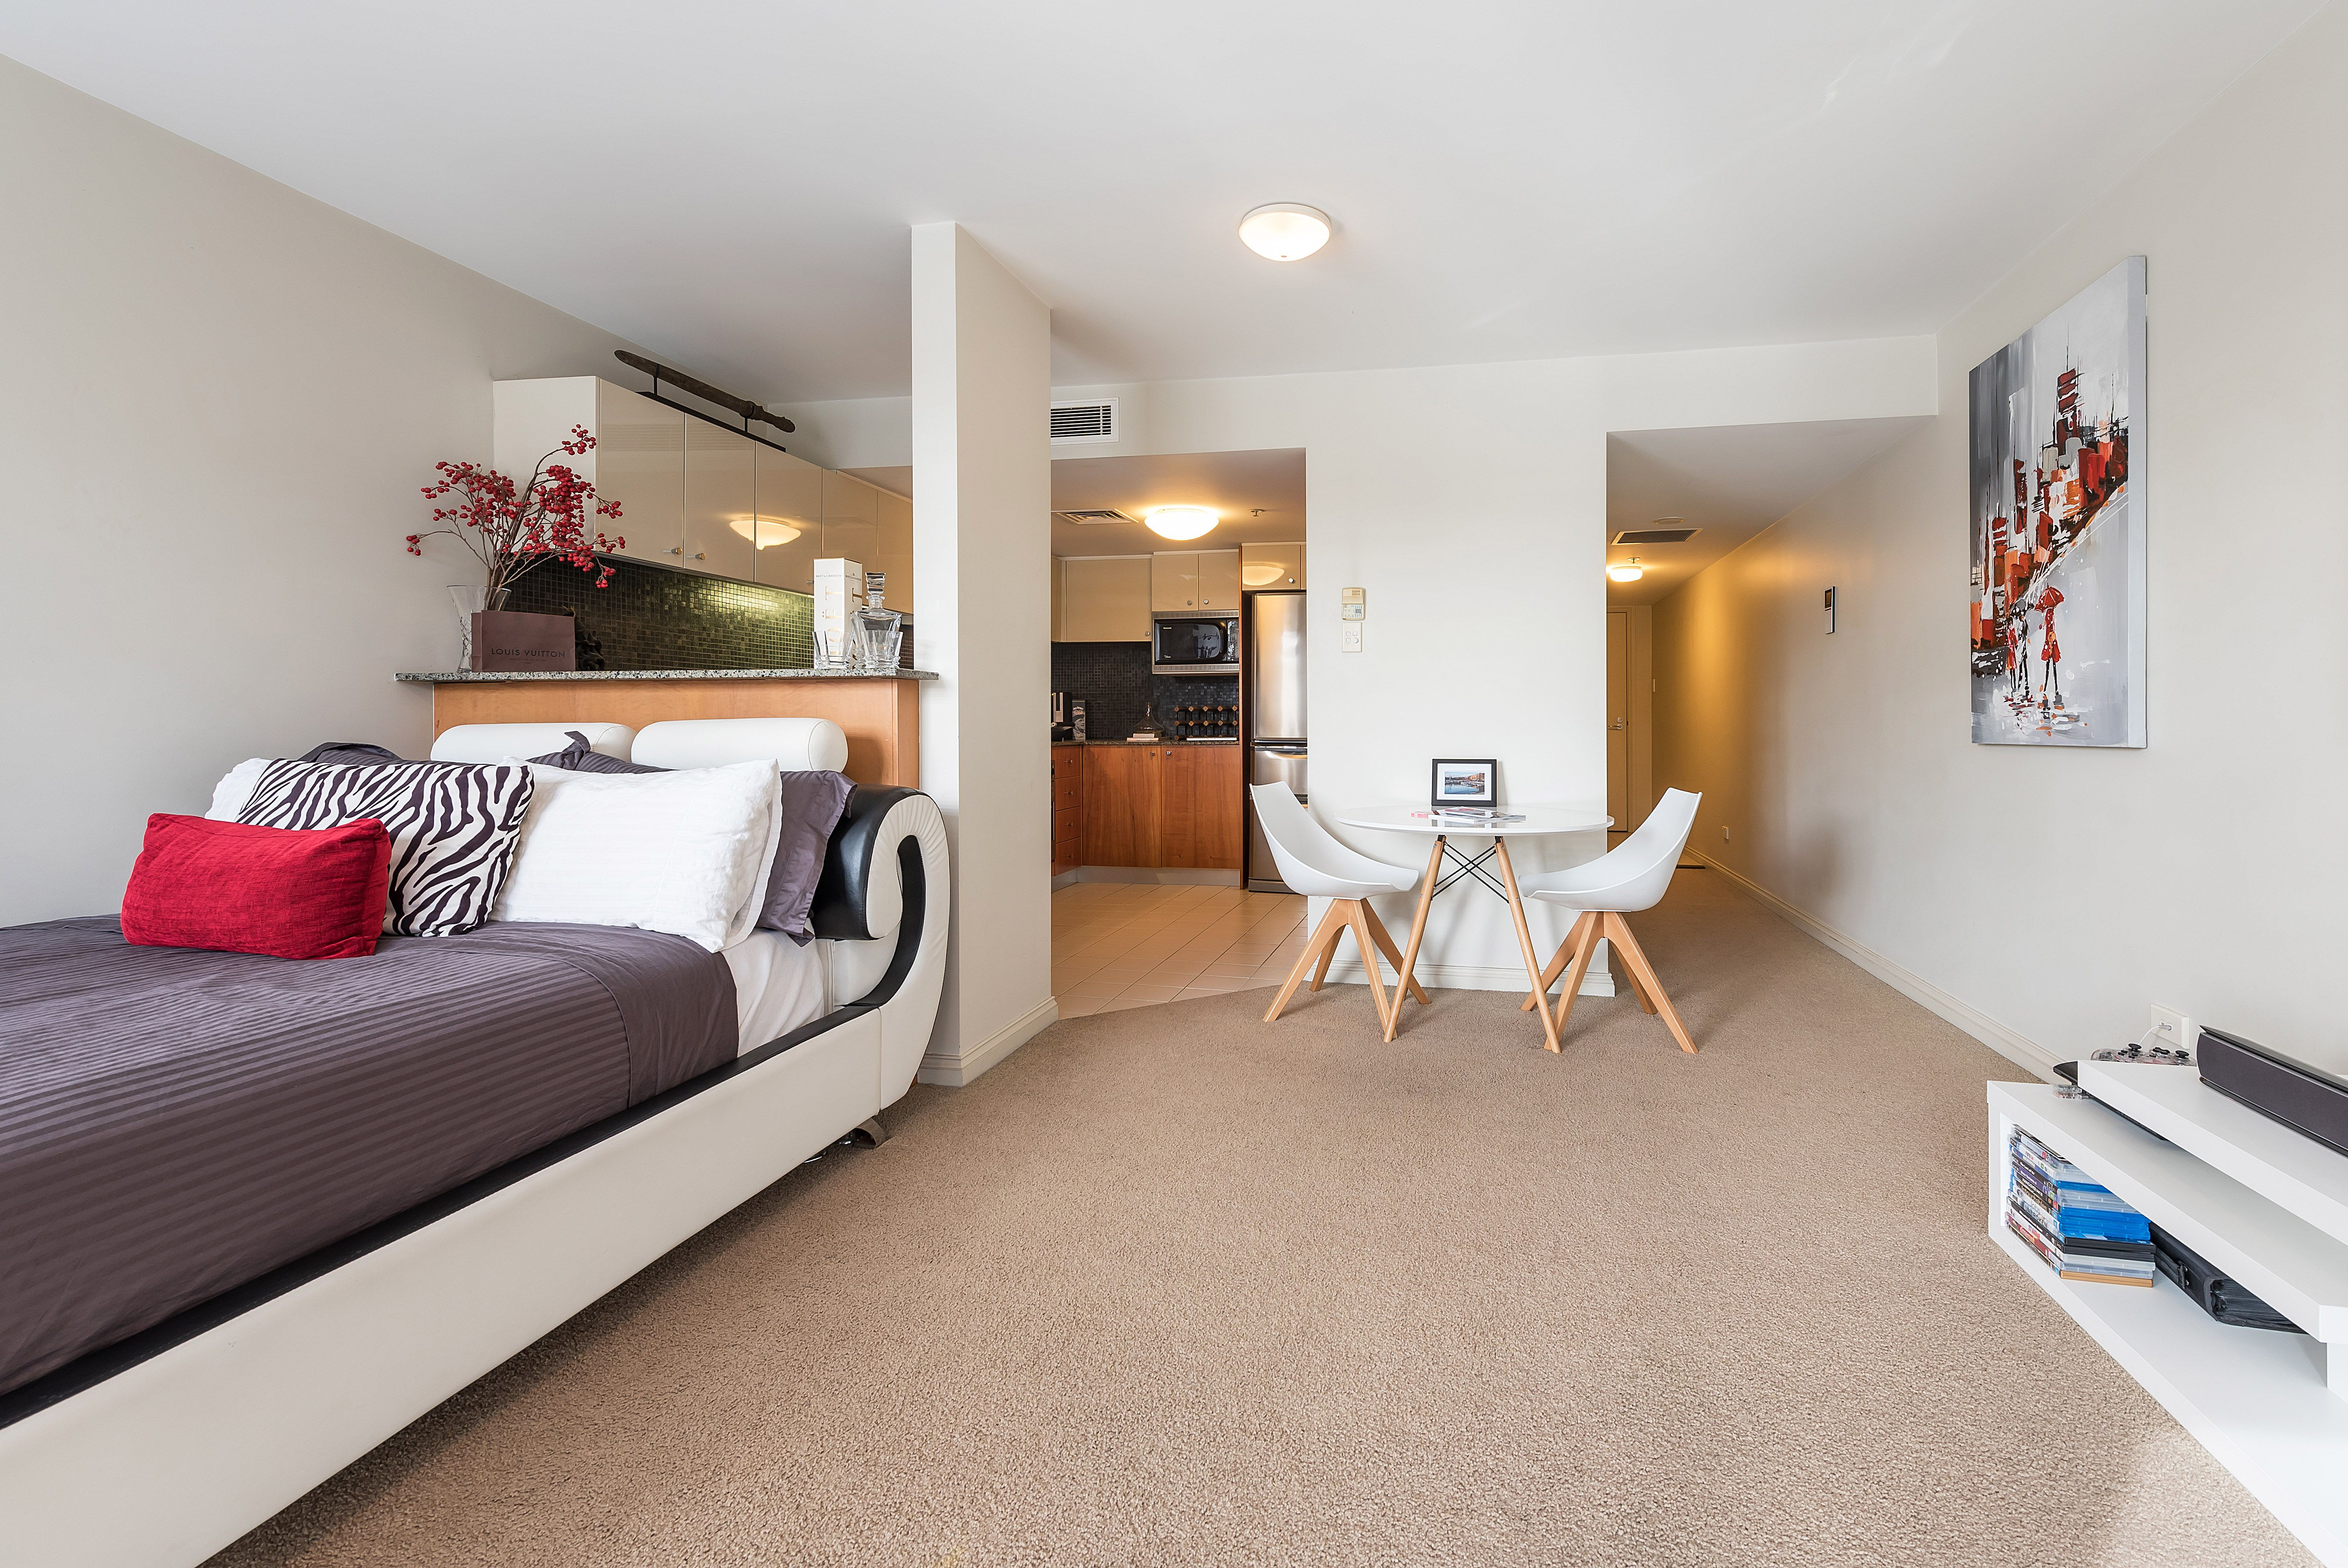 Fully Furnished studio short or long term lease available.